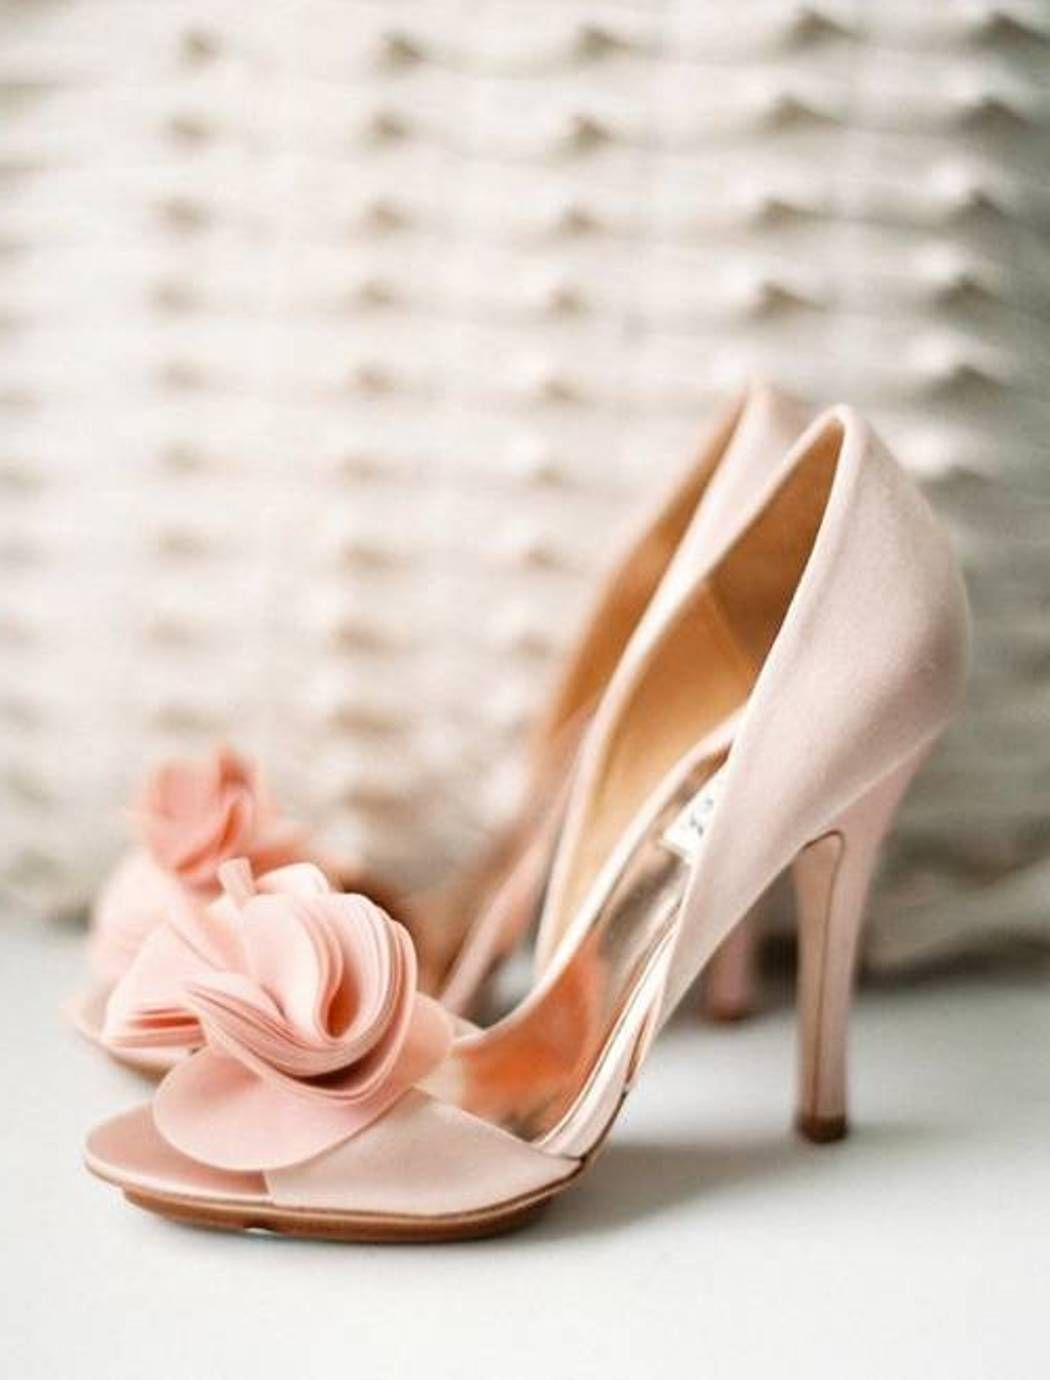 Adorable Best Wedding Shoes The Best Wedding Shoes For Women Fashionatedesires Com Fun Wedding Shoes Pink Dress Shoes Pink Wedding Shoes